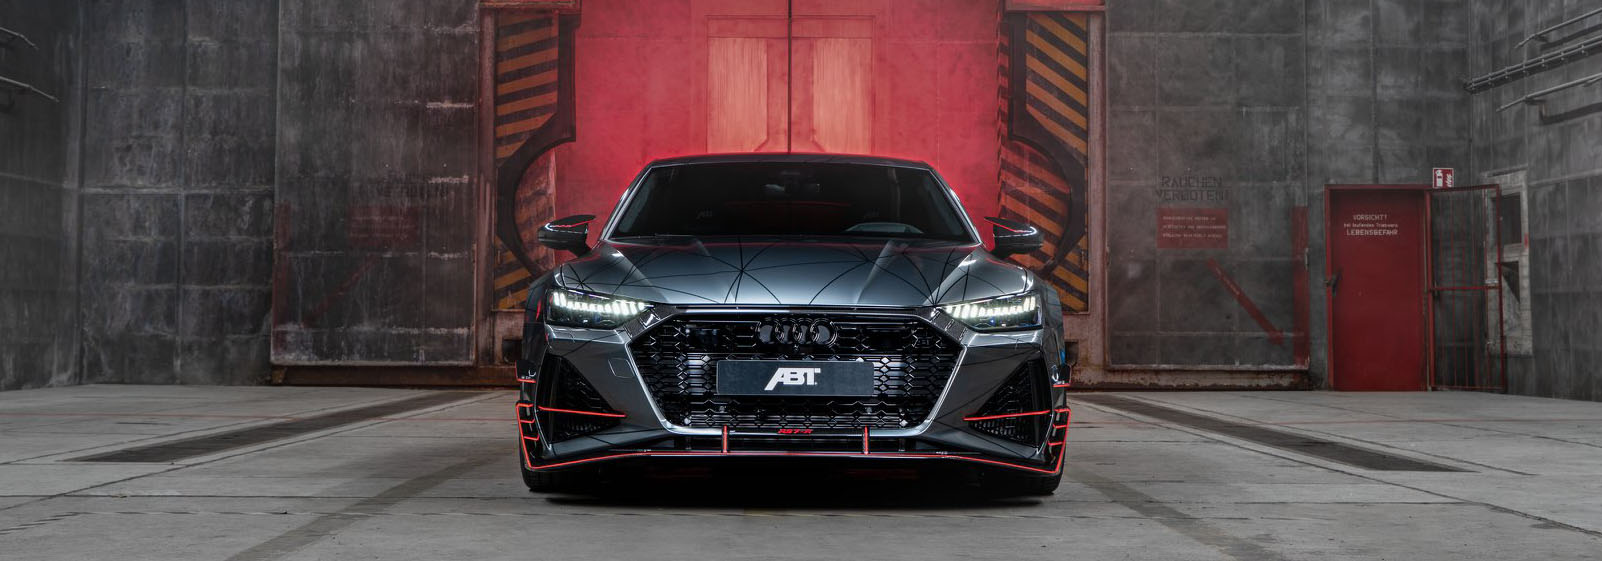 Audi RS7-R ABT Sportsline Special Edition